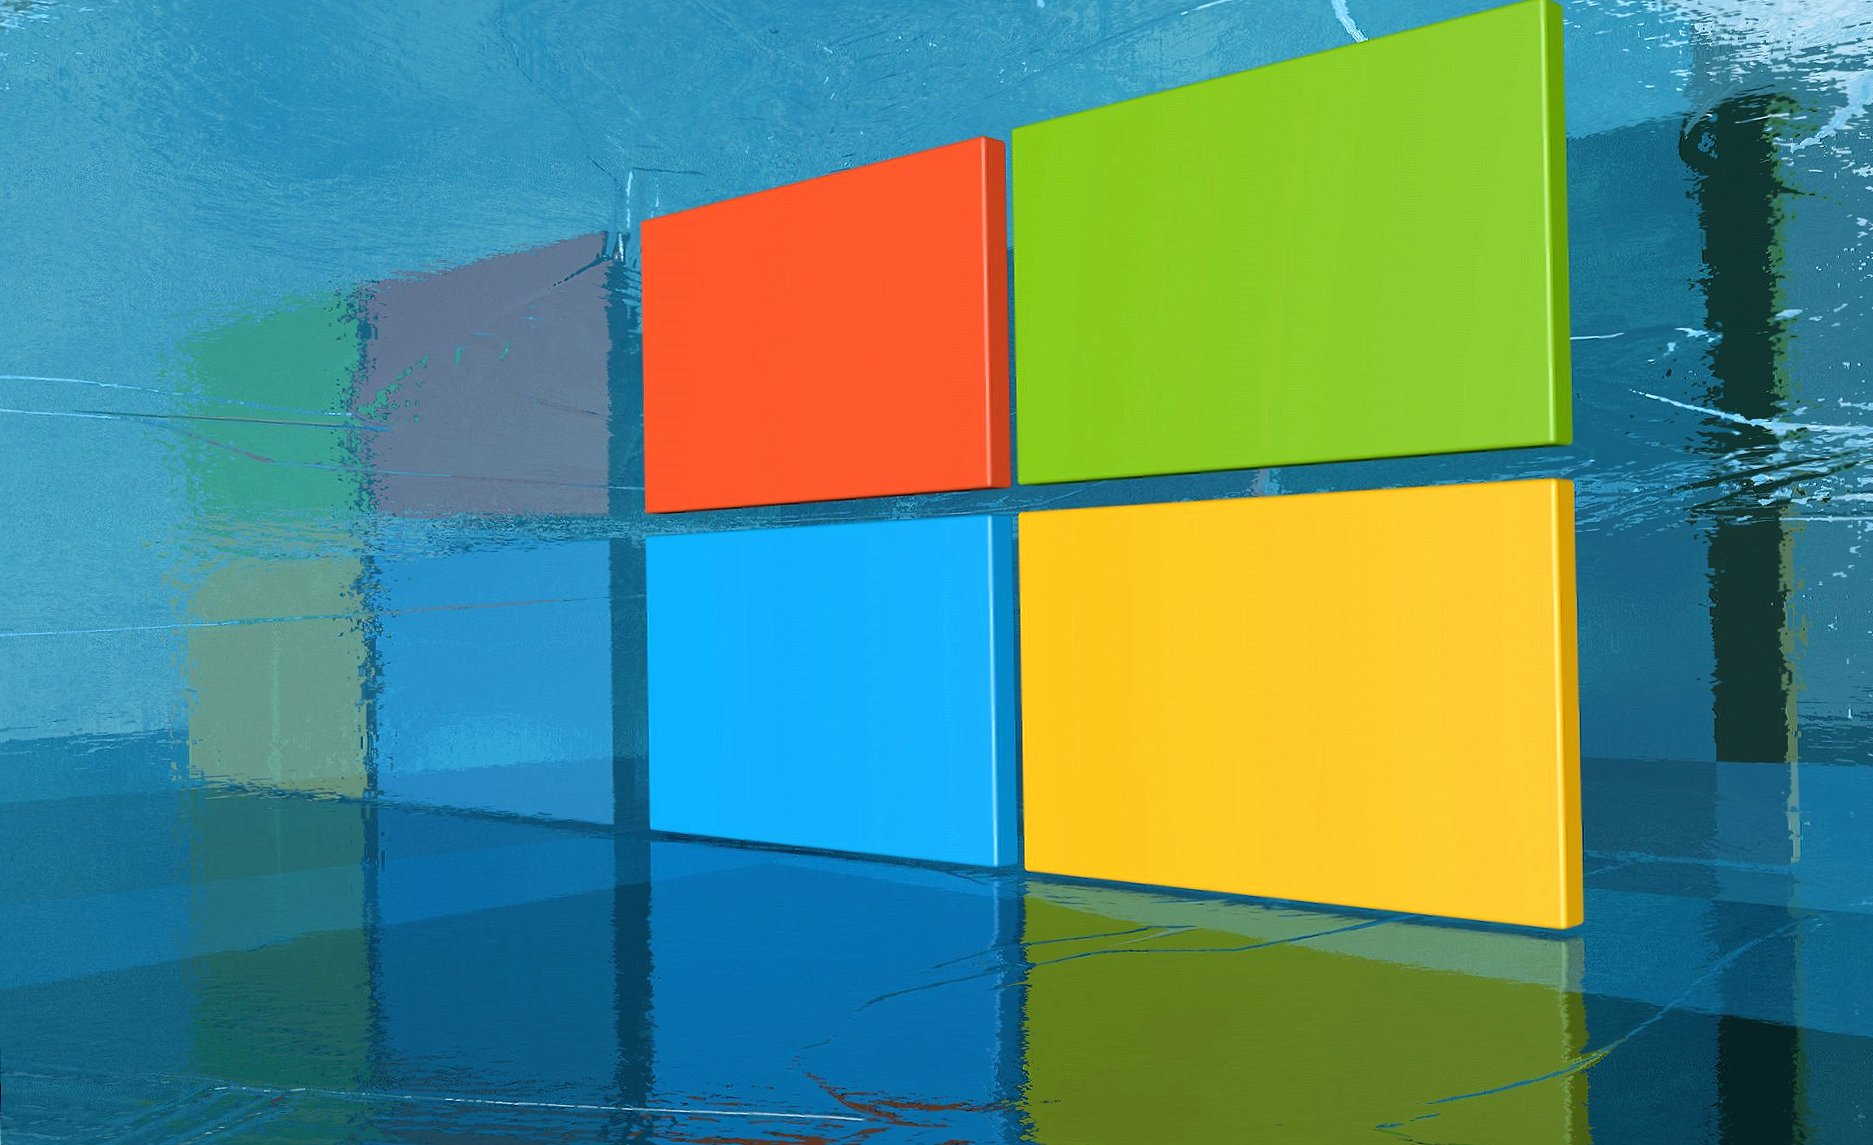 mirror windows 8 wallpapers HD quality